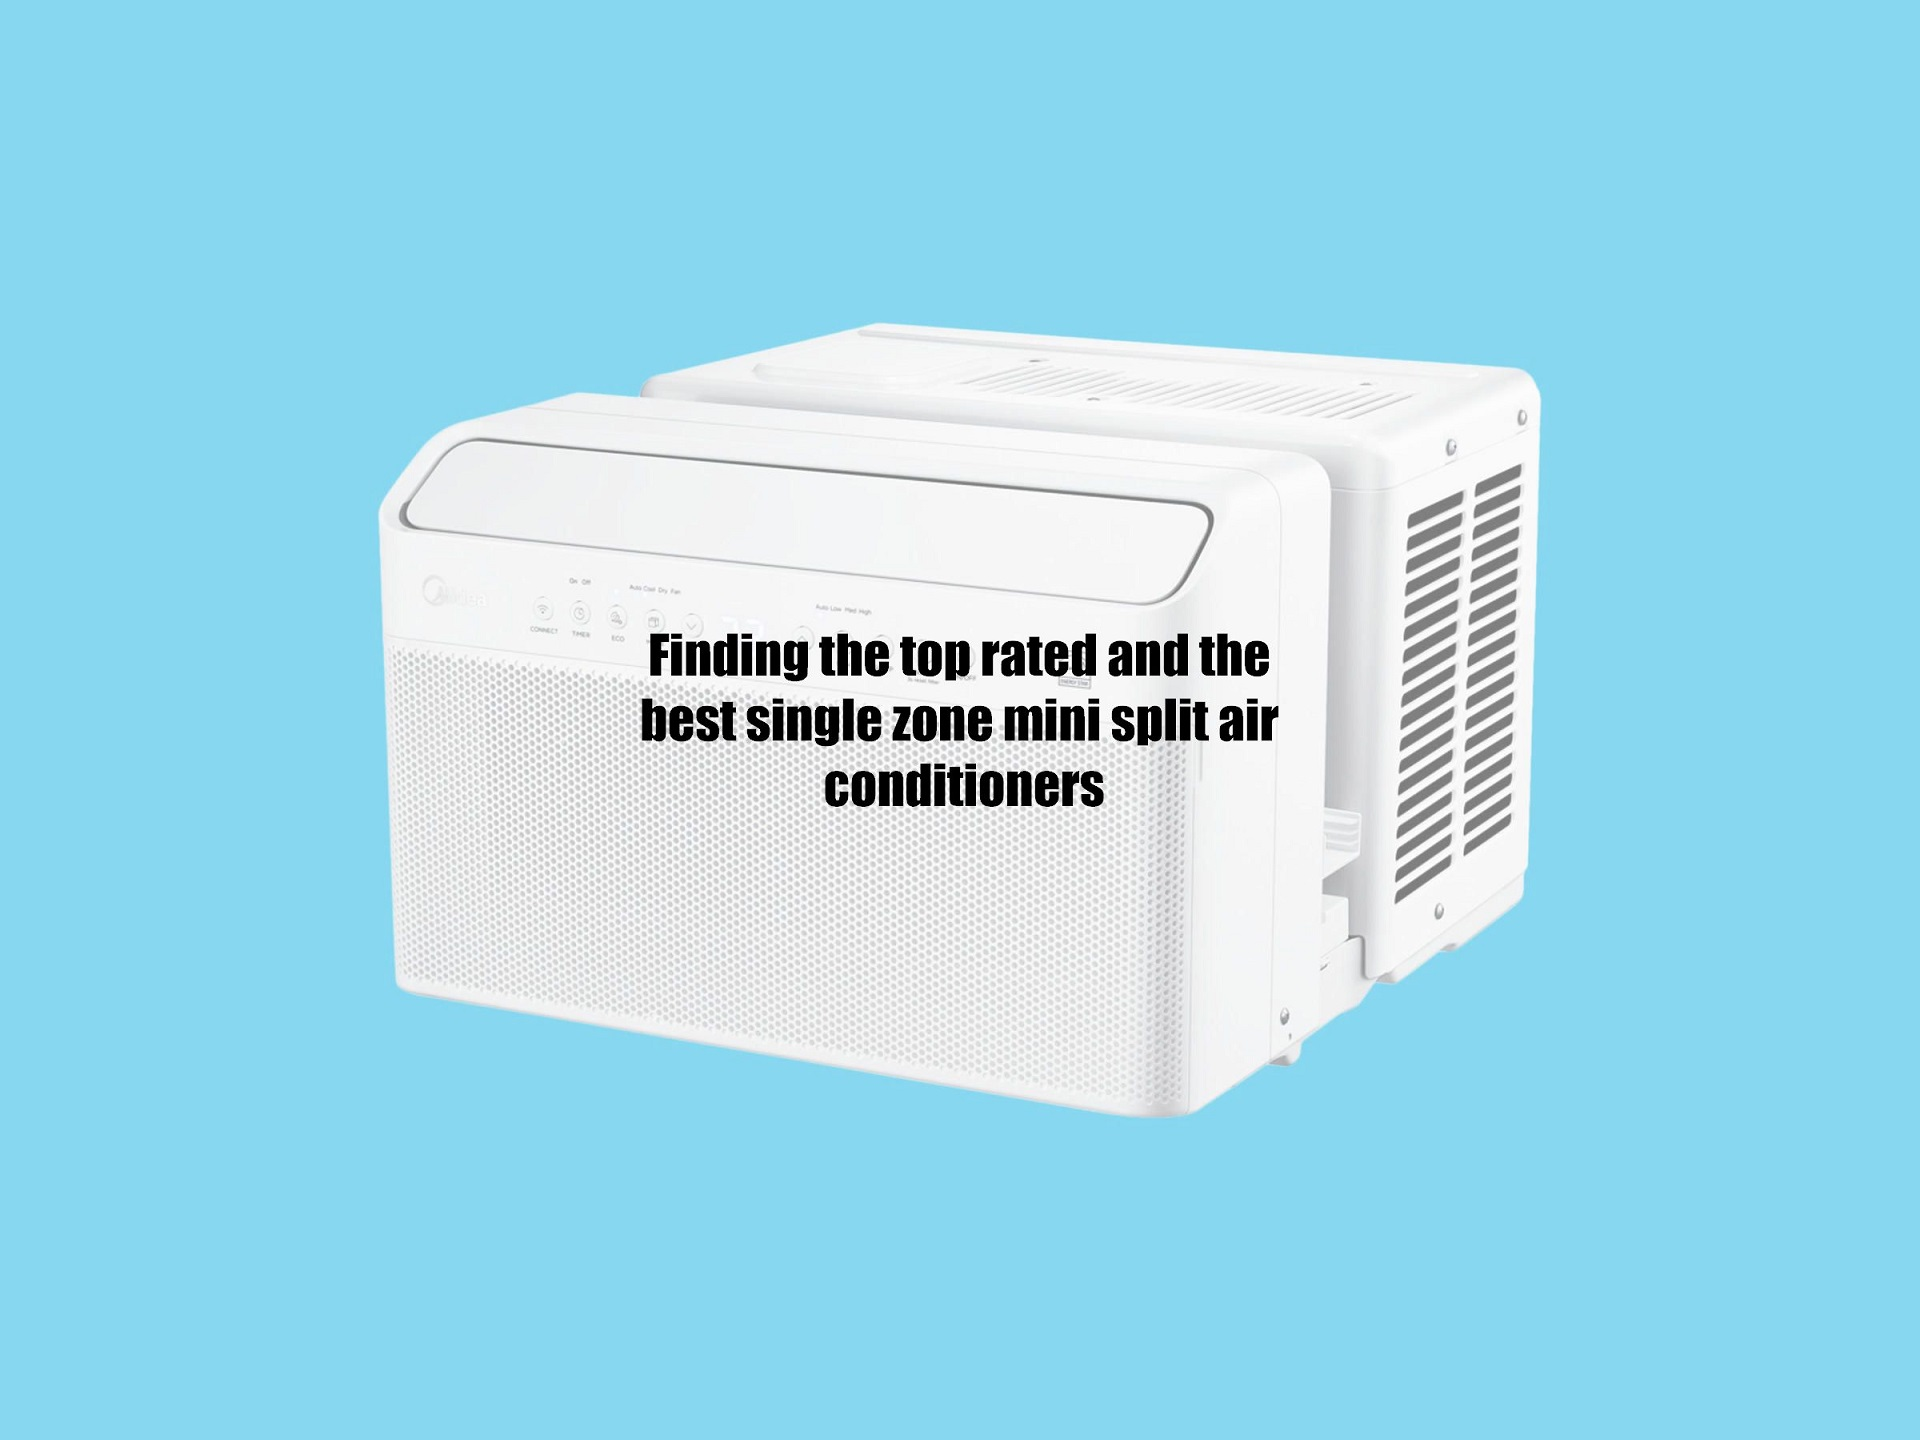 Finding the top rated and the best single zone mini split air conditioners